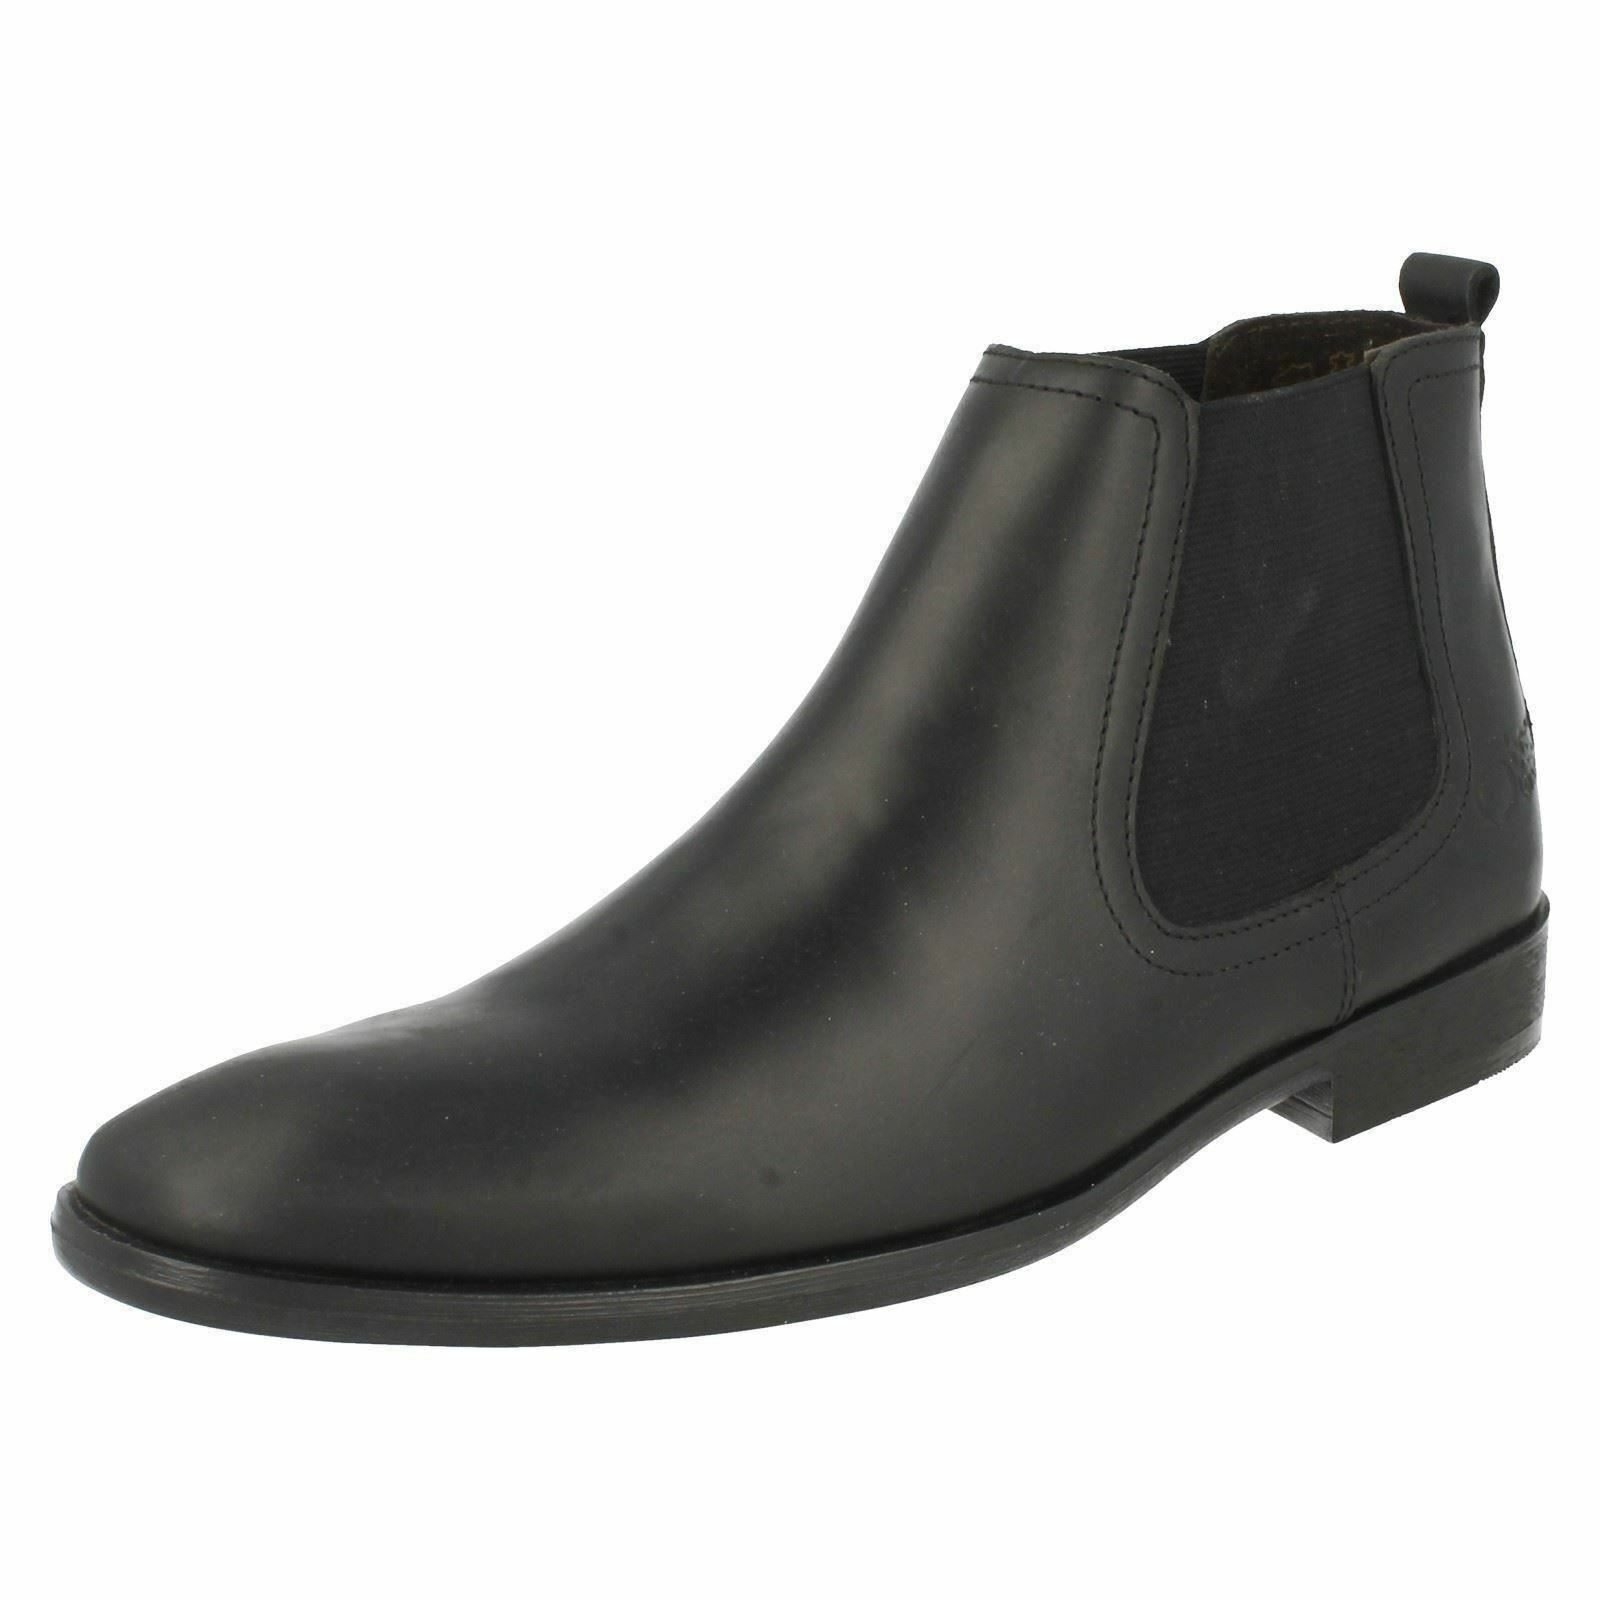 SALE Base London 'Saffron' Waxy Black Pull On Boots Round Toe Leather Chelsea Boots On 67eb02